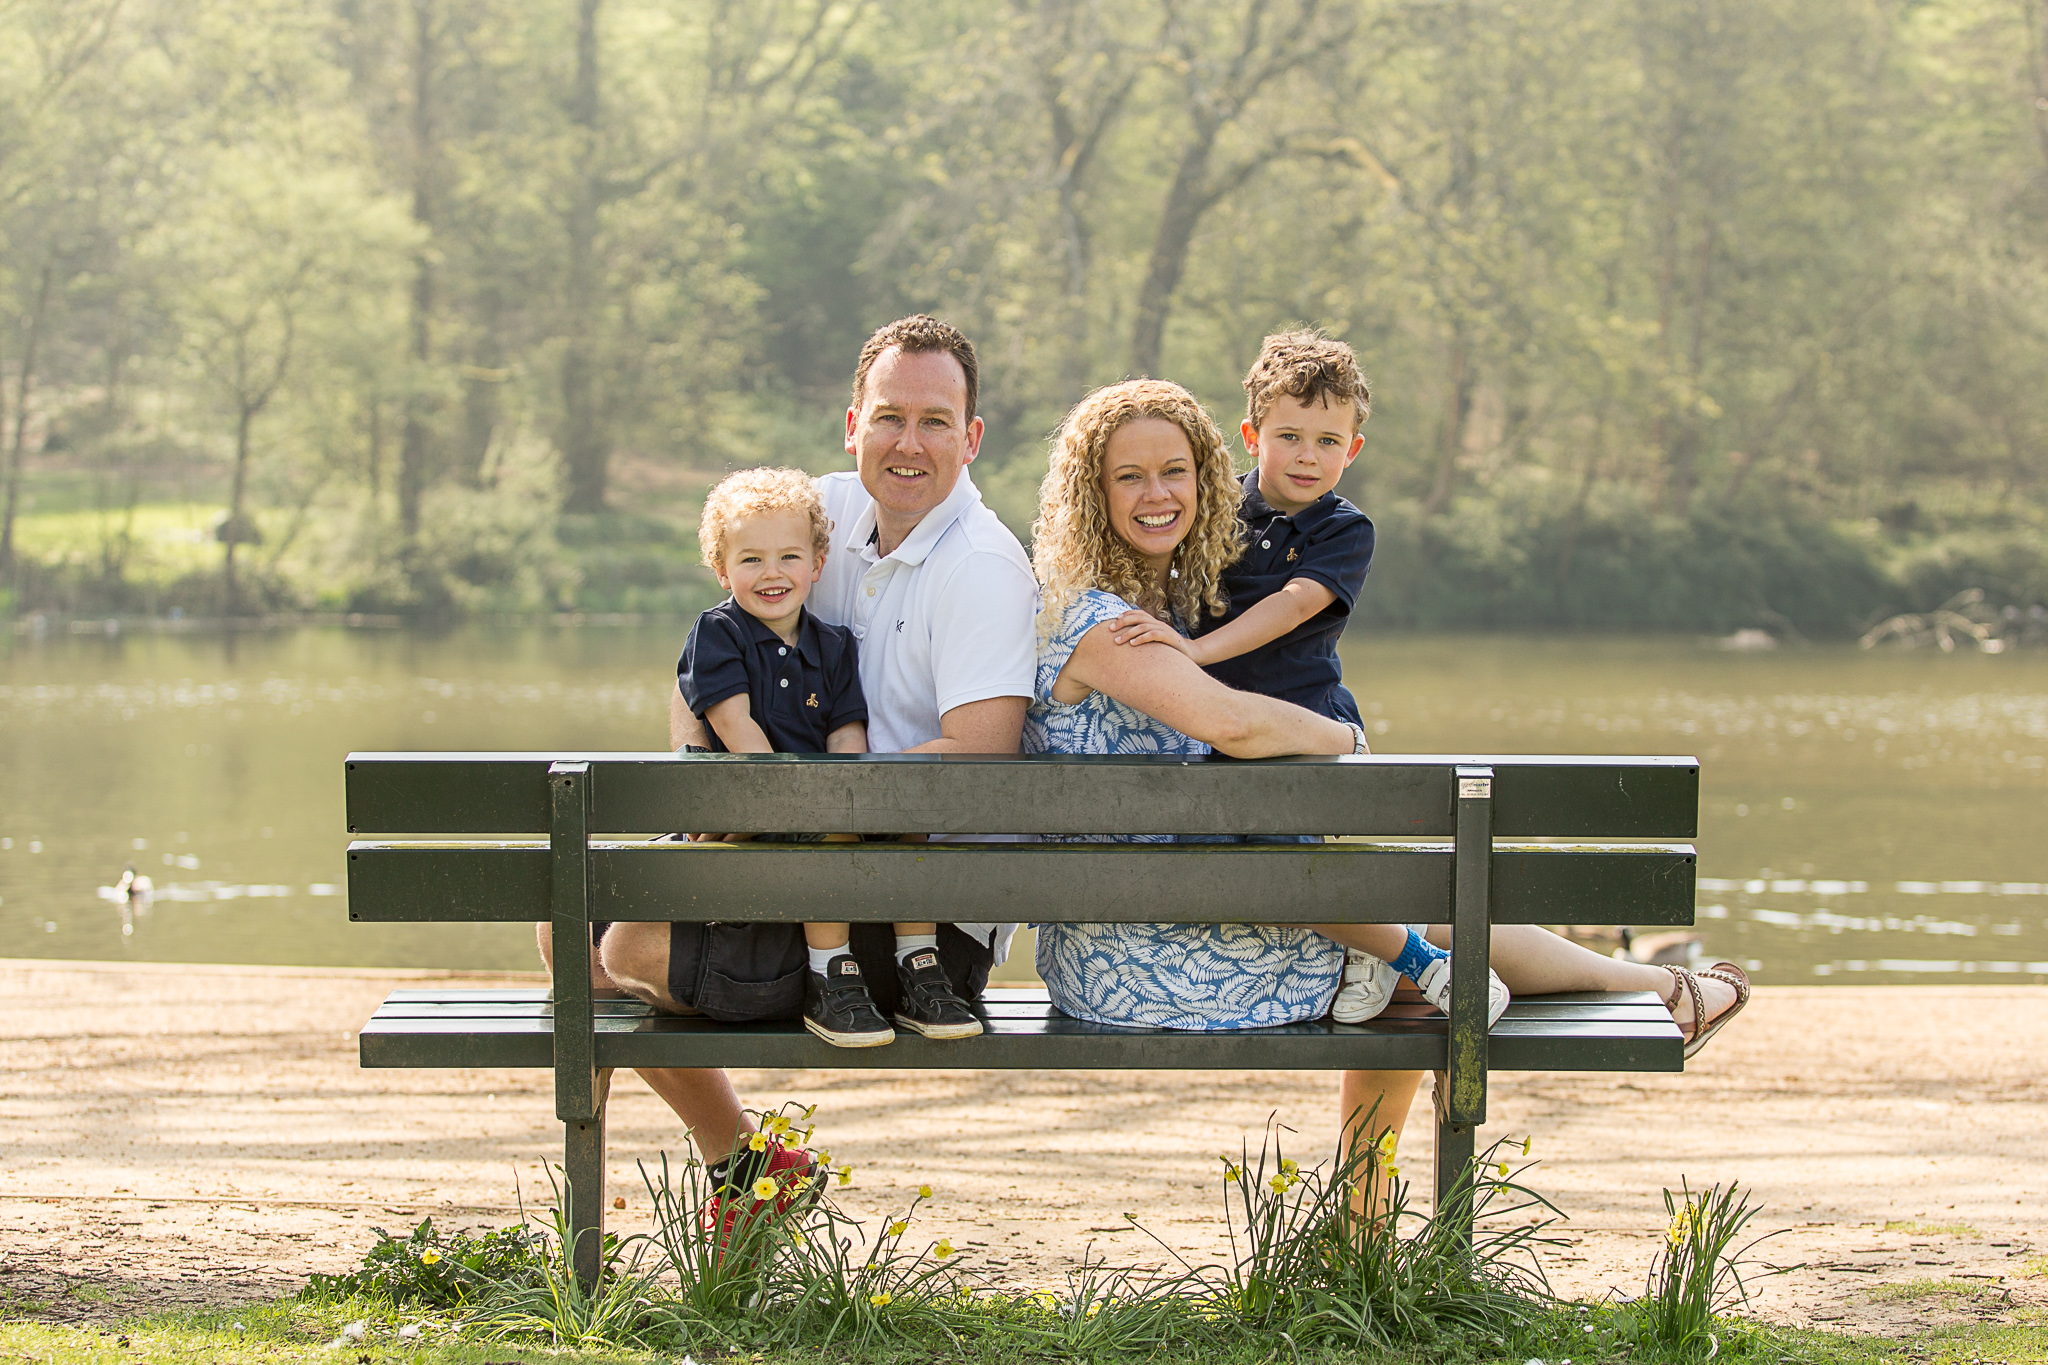 Family Portrait at Priory Park